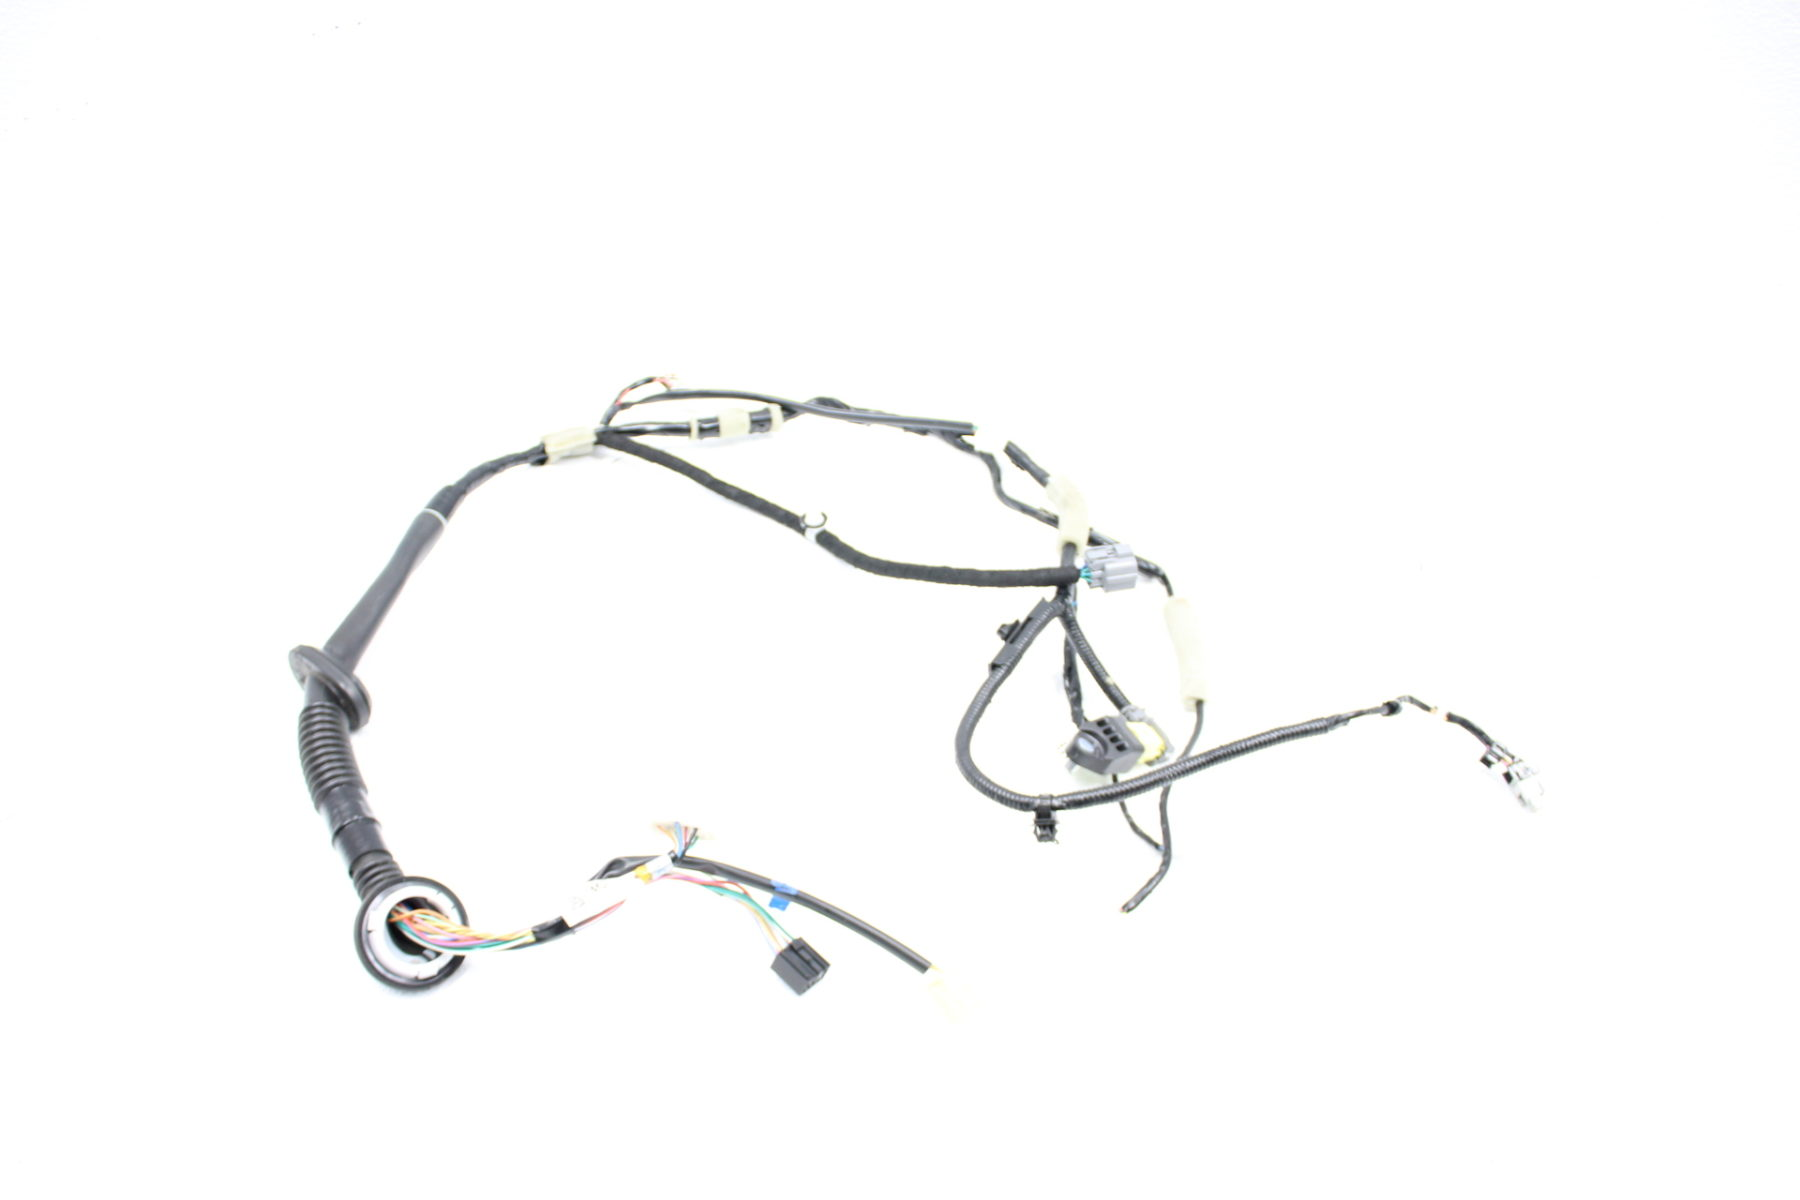 Subaru Wrx Amp Sti Right Front Door Harness